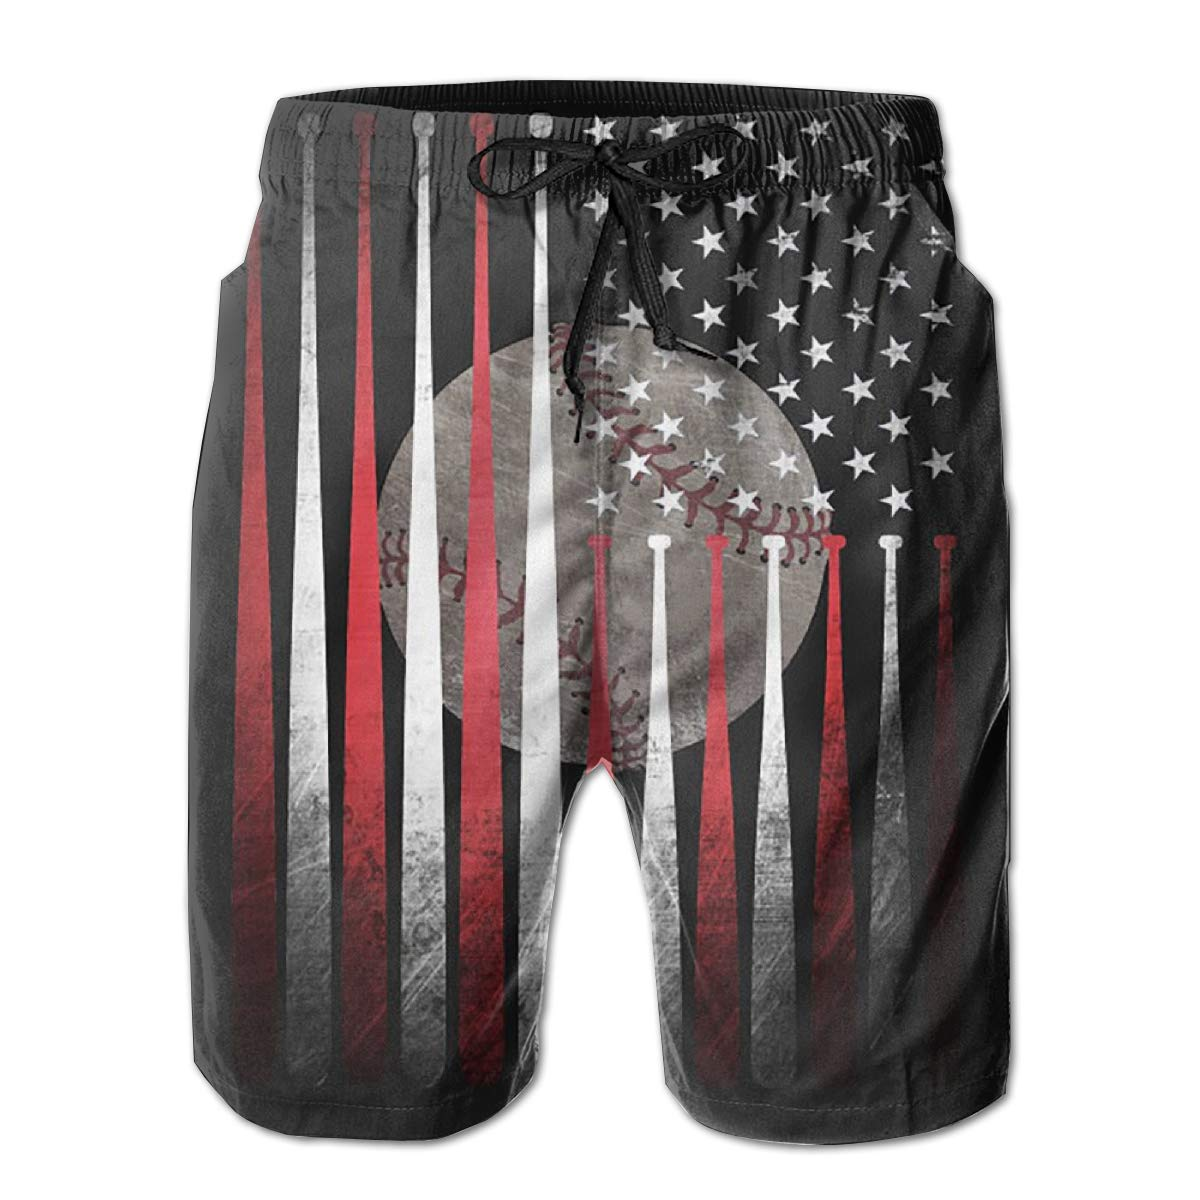 HZamora/_H Mens Vintage American Flag Baseball Summer Breathable Quick-Drying Swim Trunks Beach Shorts Board Shorts